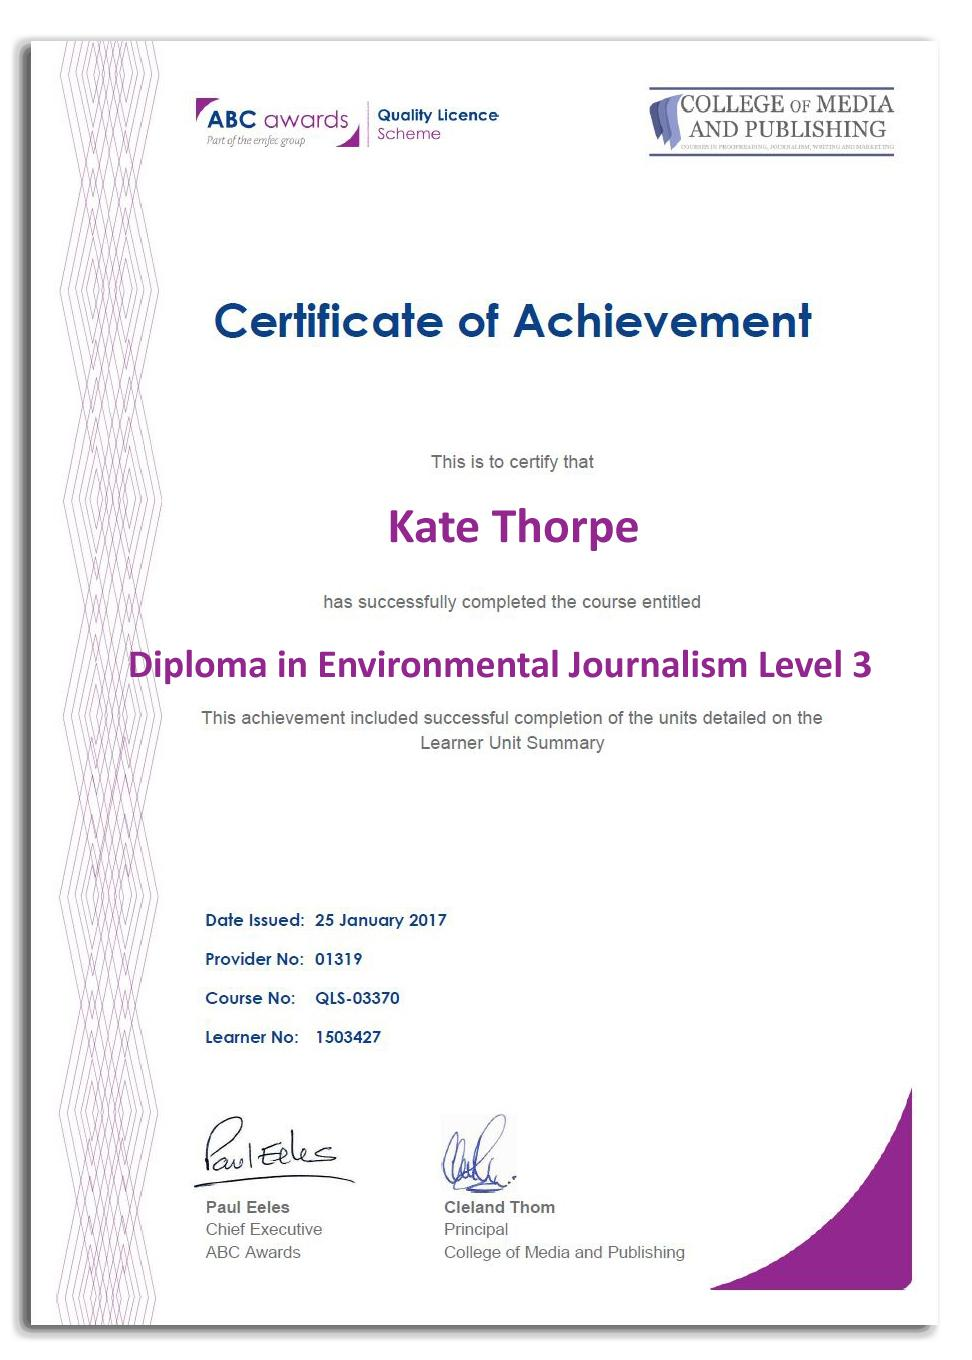 Environmental journalism course certificate